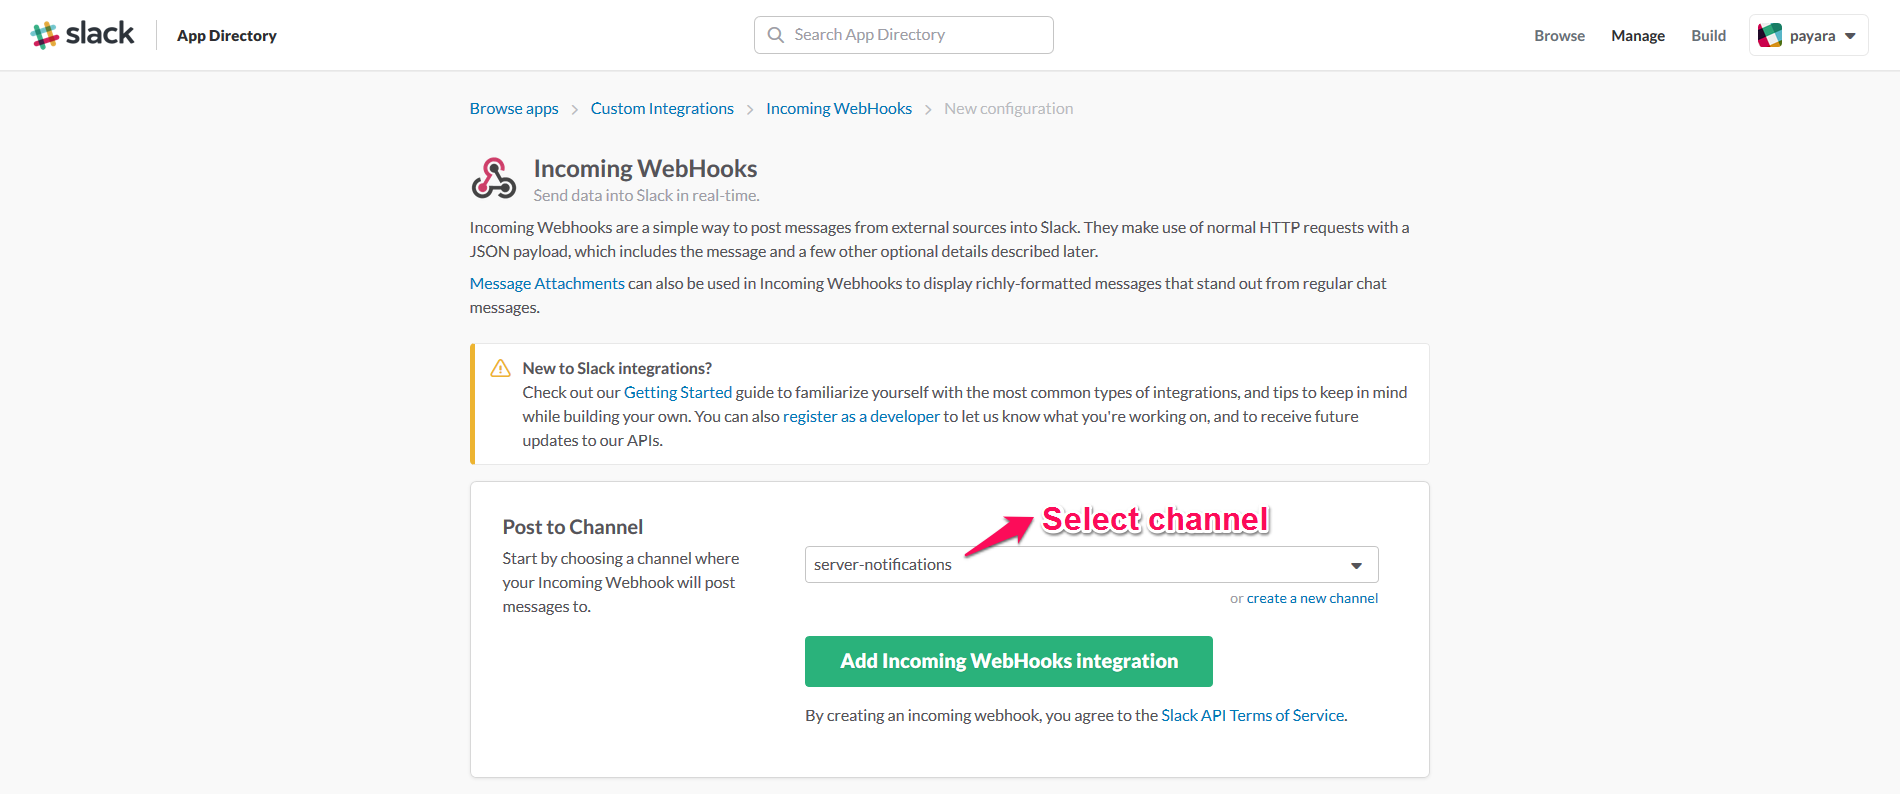 Incoming WebHook Channel Selection